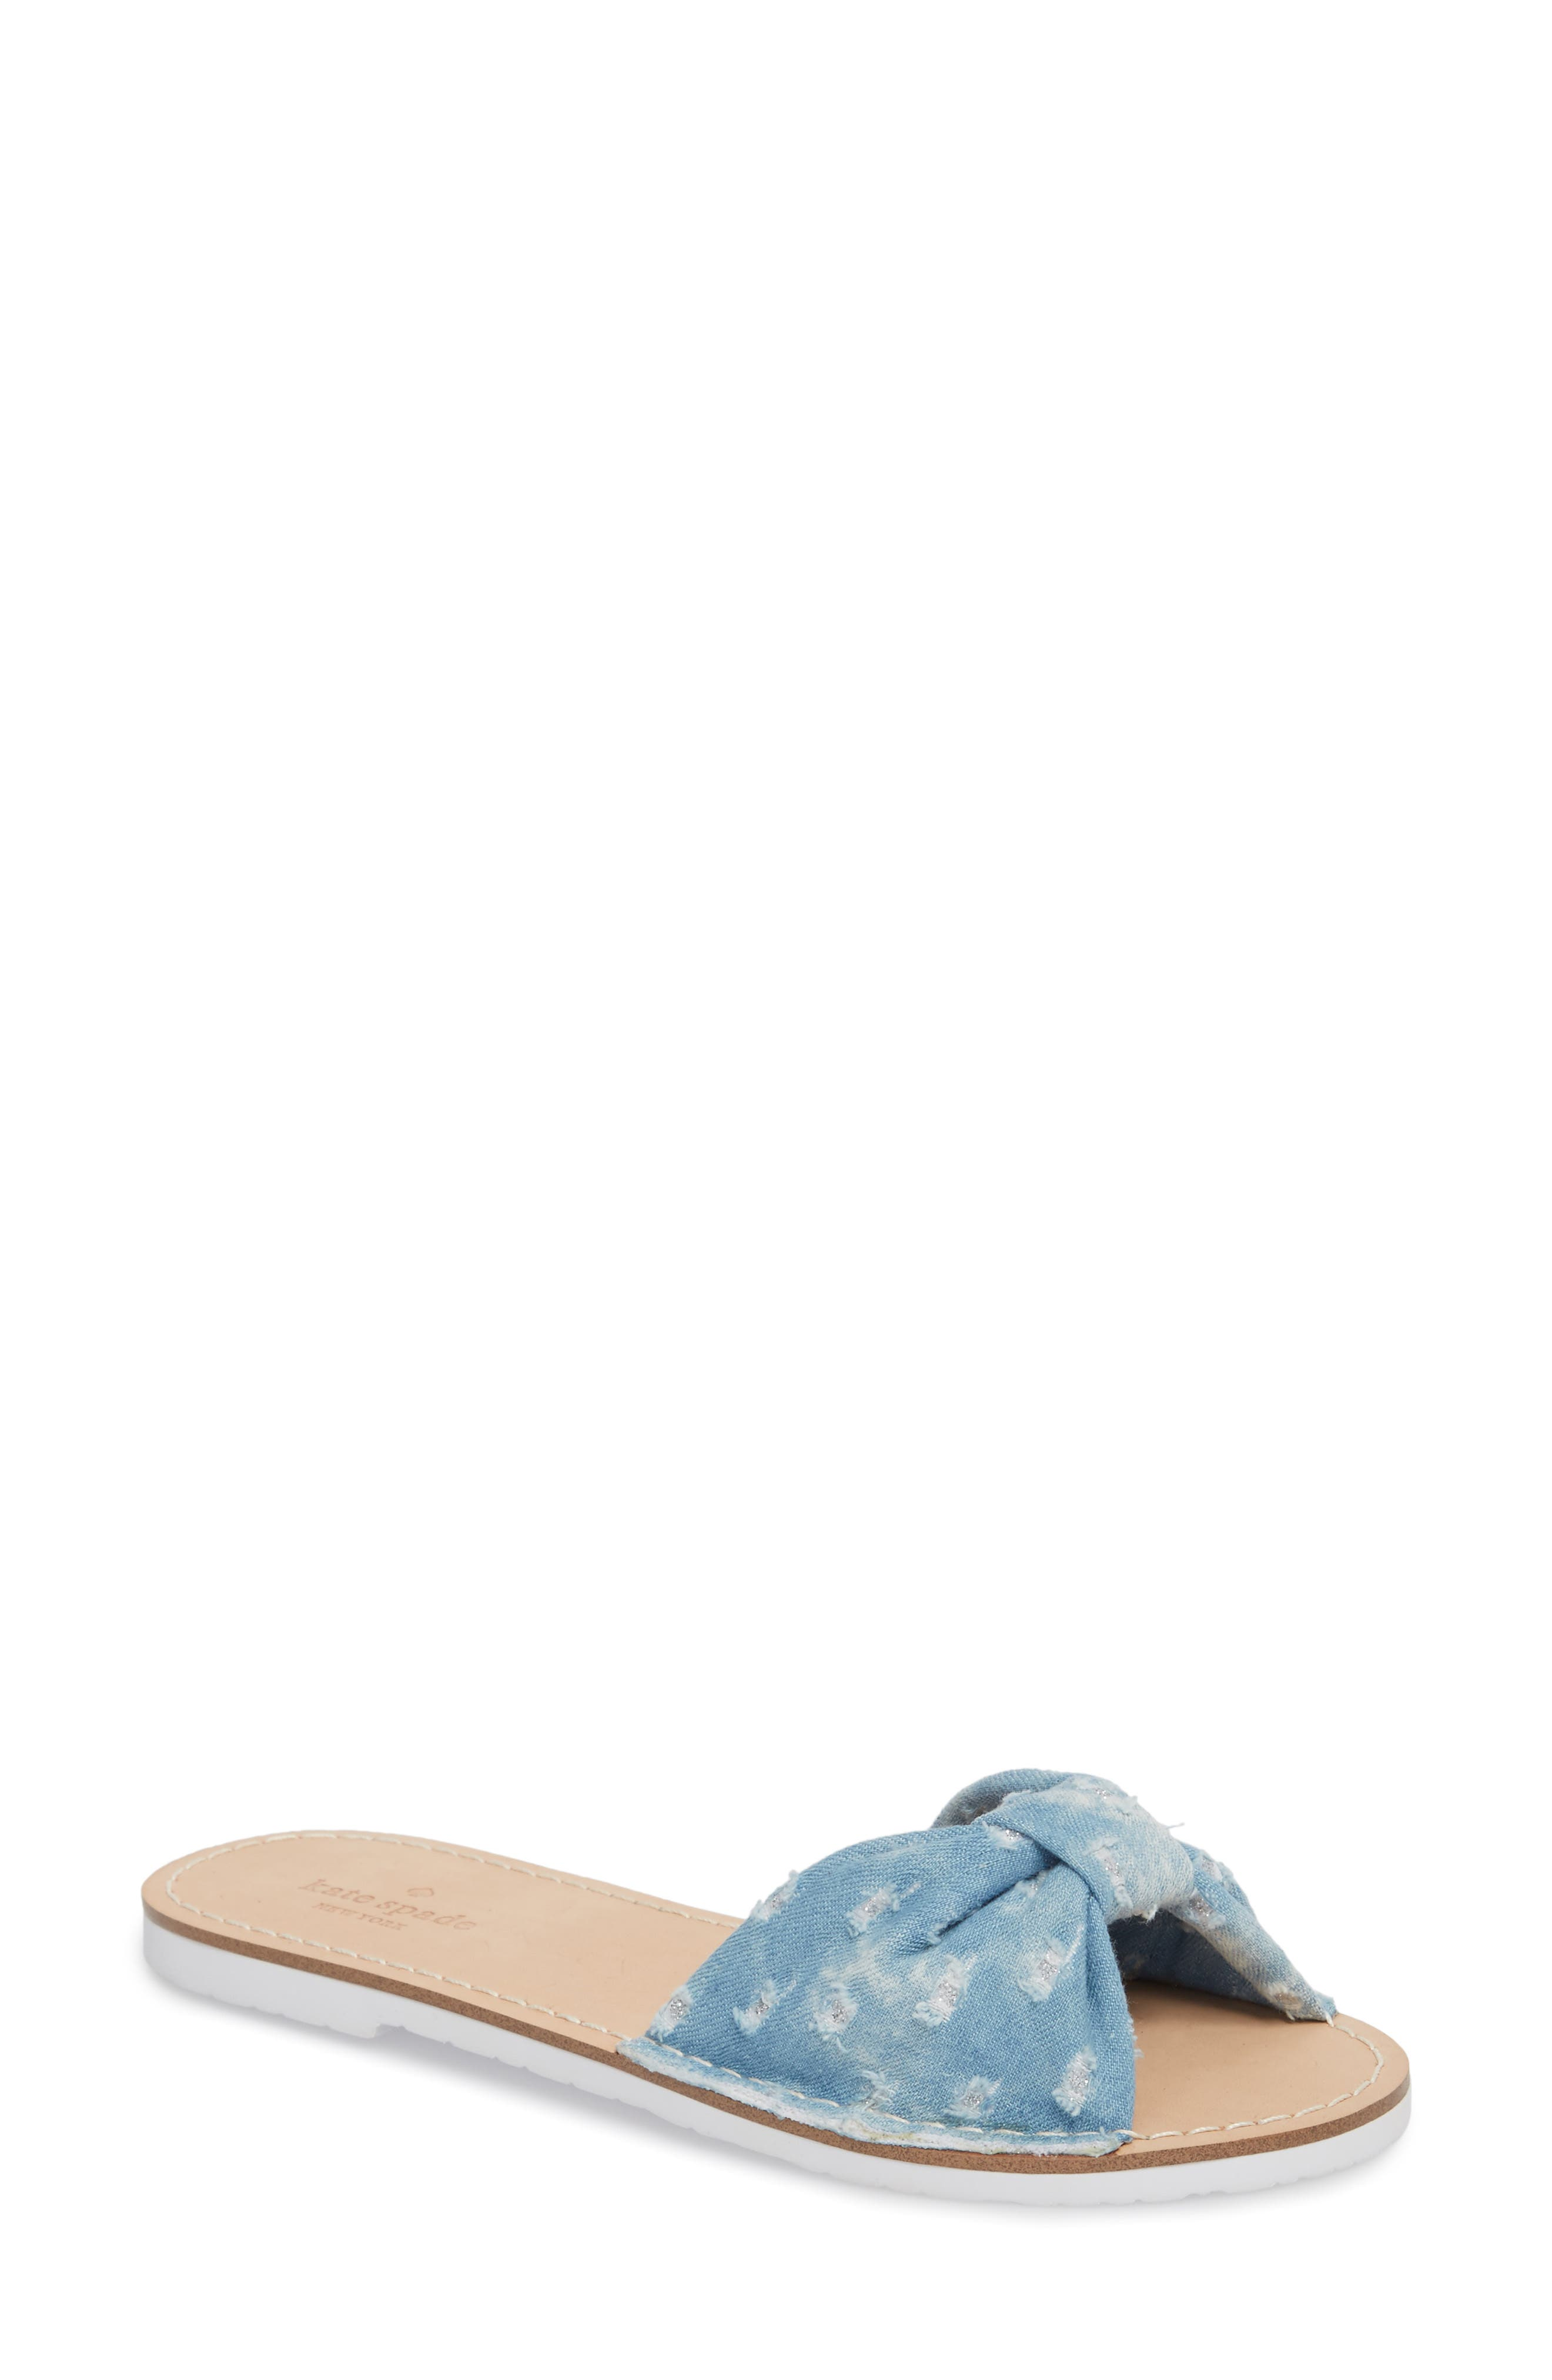 Alternate Image 1 Selected - kate spade new york indi slide sandal (Women)